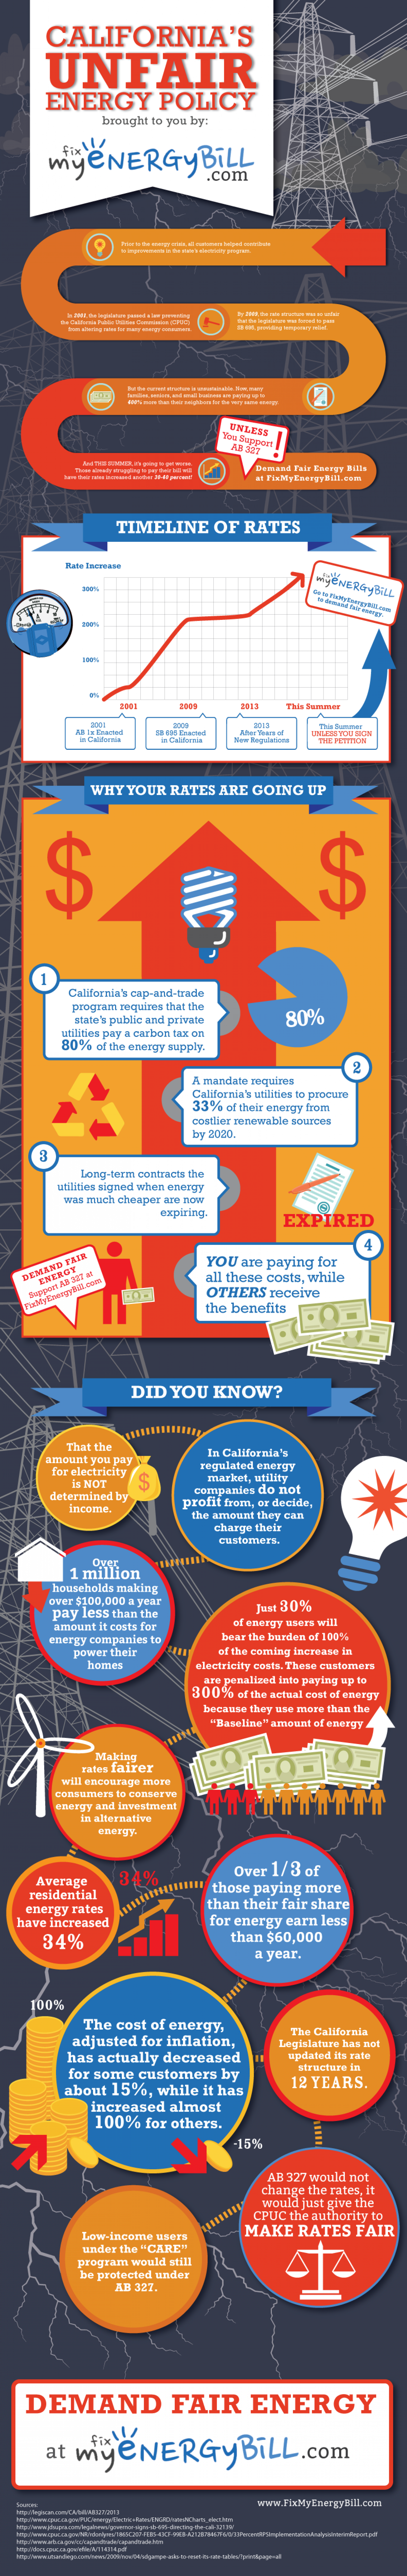 California's Unfair Energy Policy Infographic